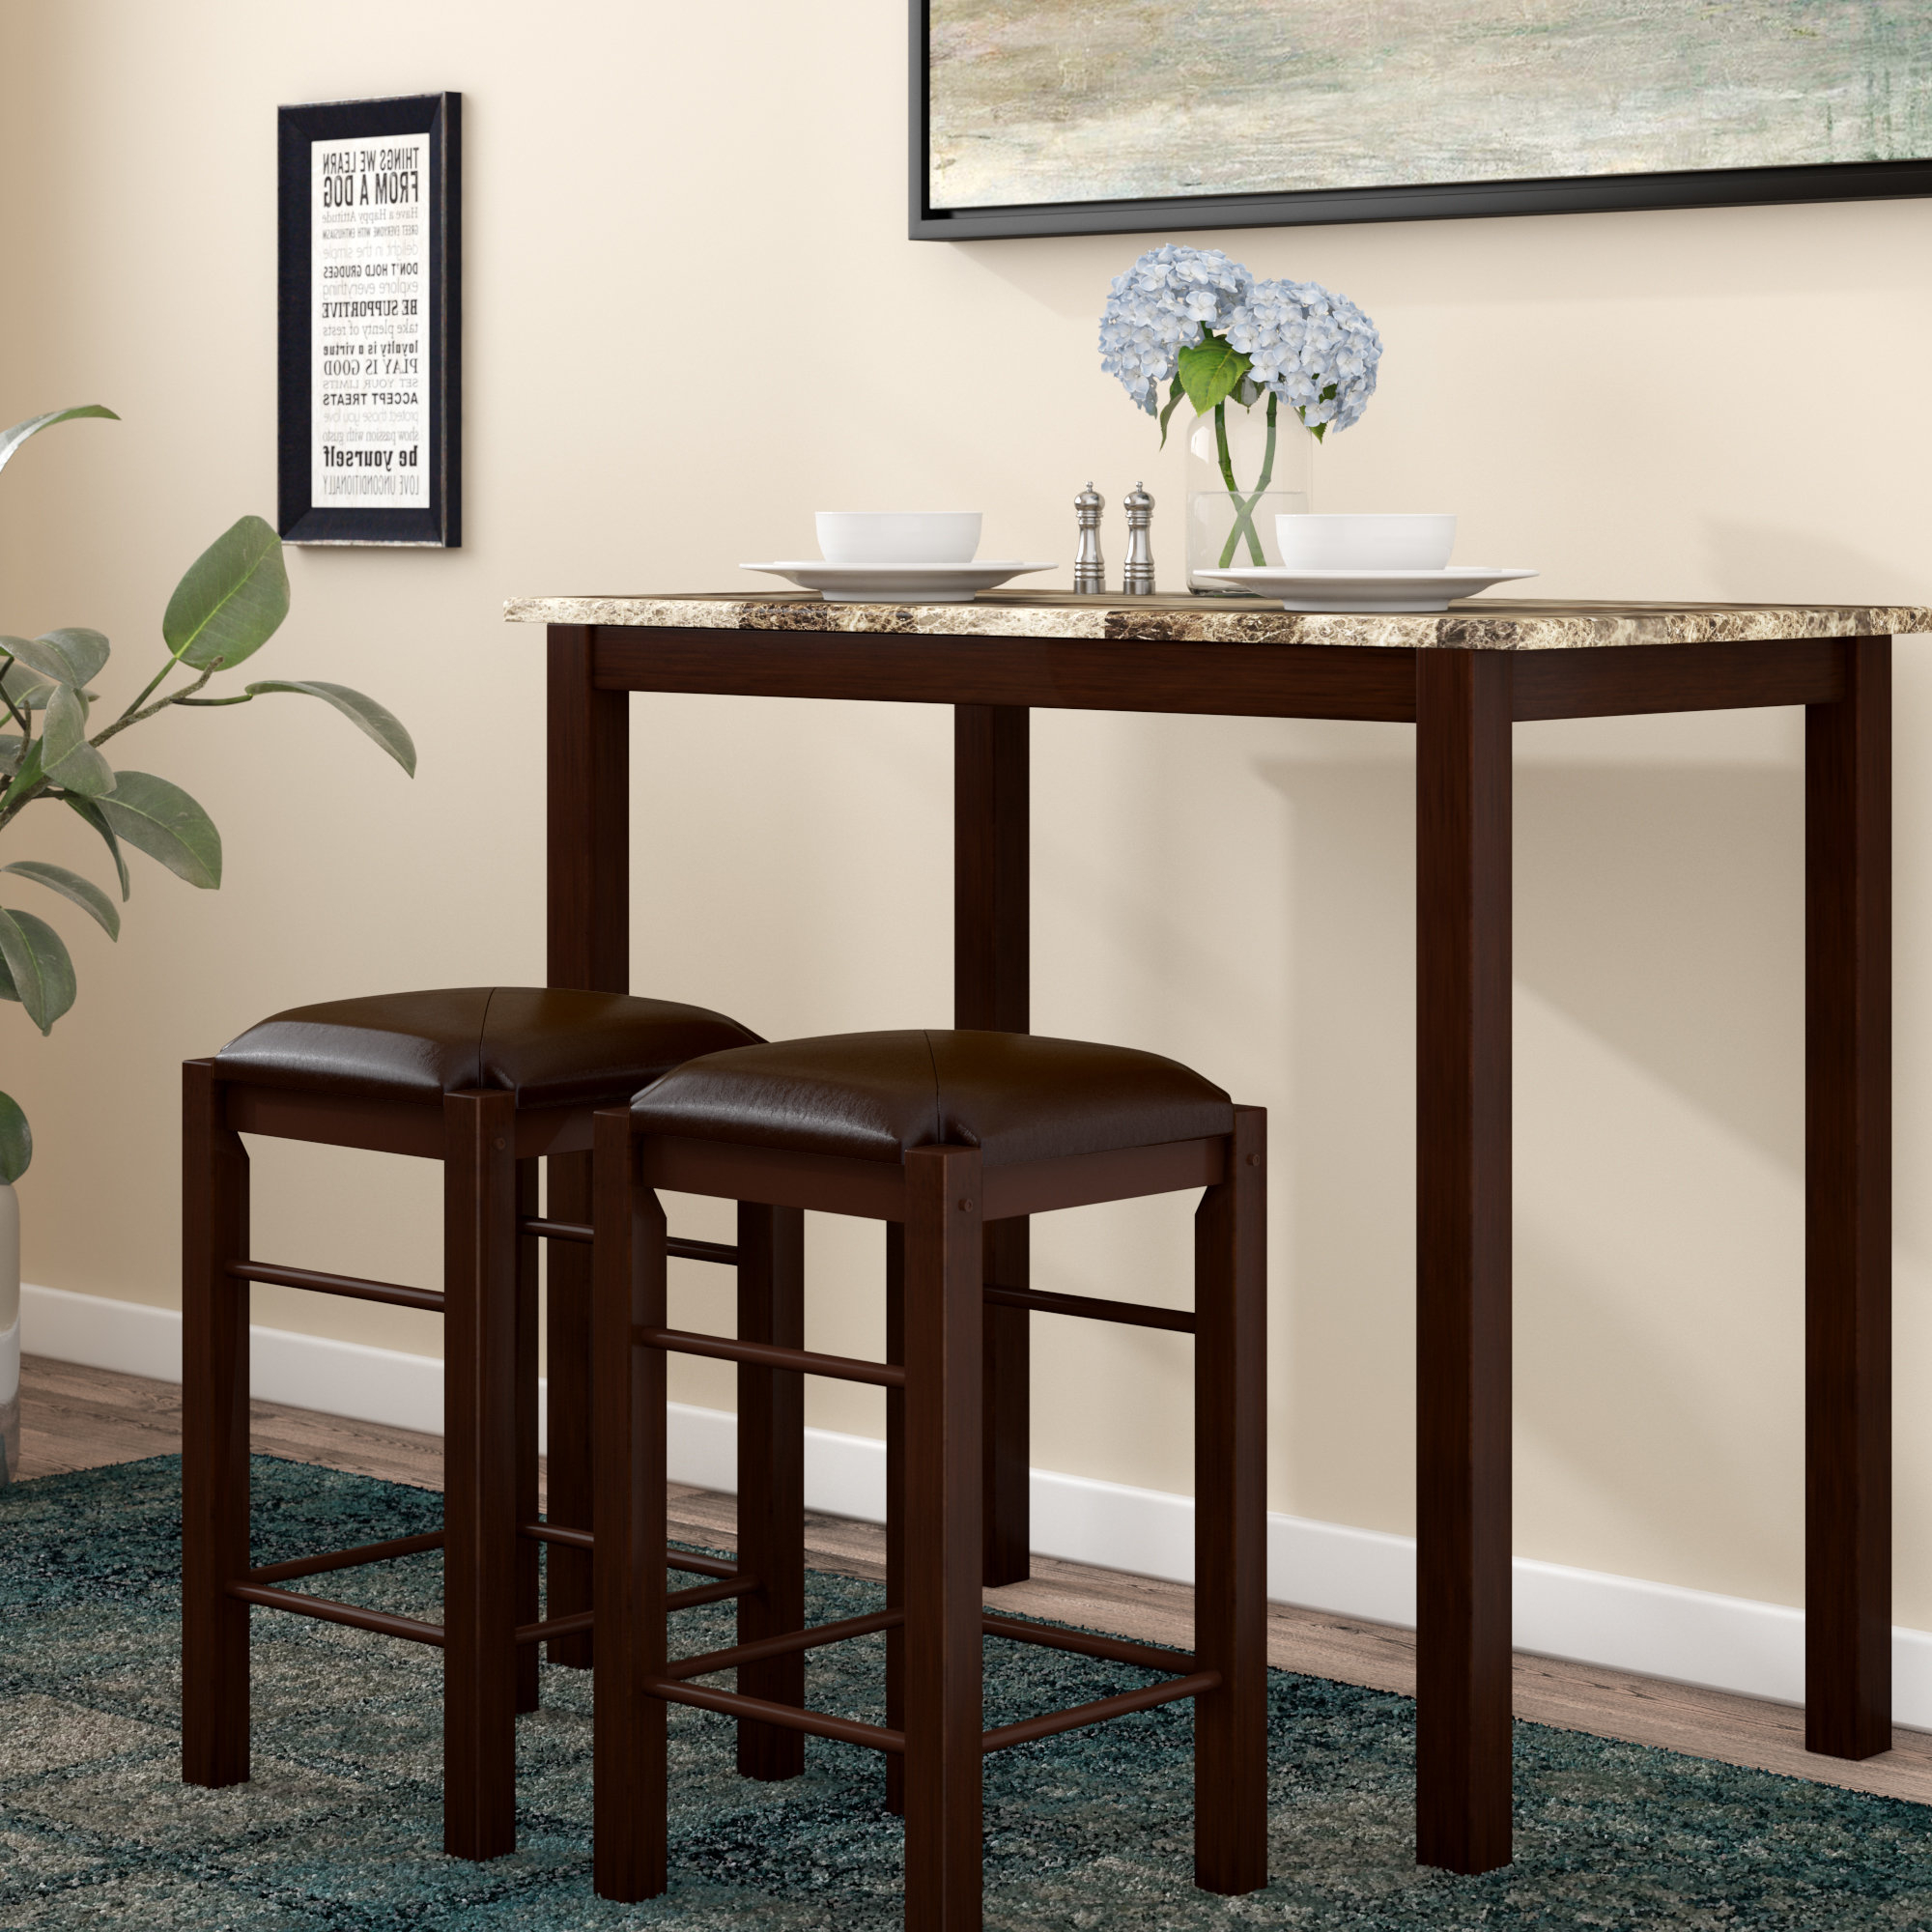 Best And Newest Penelope 3 Piece Counter Height Wood Dining Set Regarding Debby Small Space 3 Piece Dining Sets (View 6 of 25)